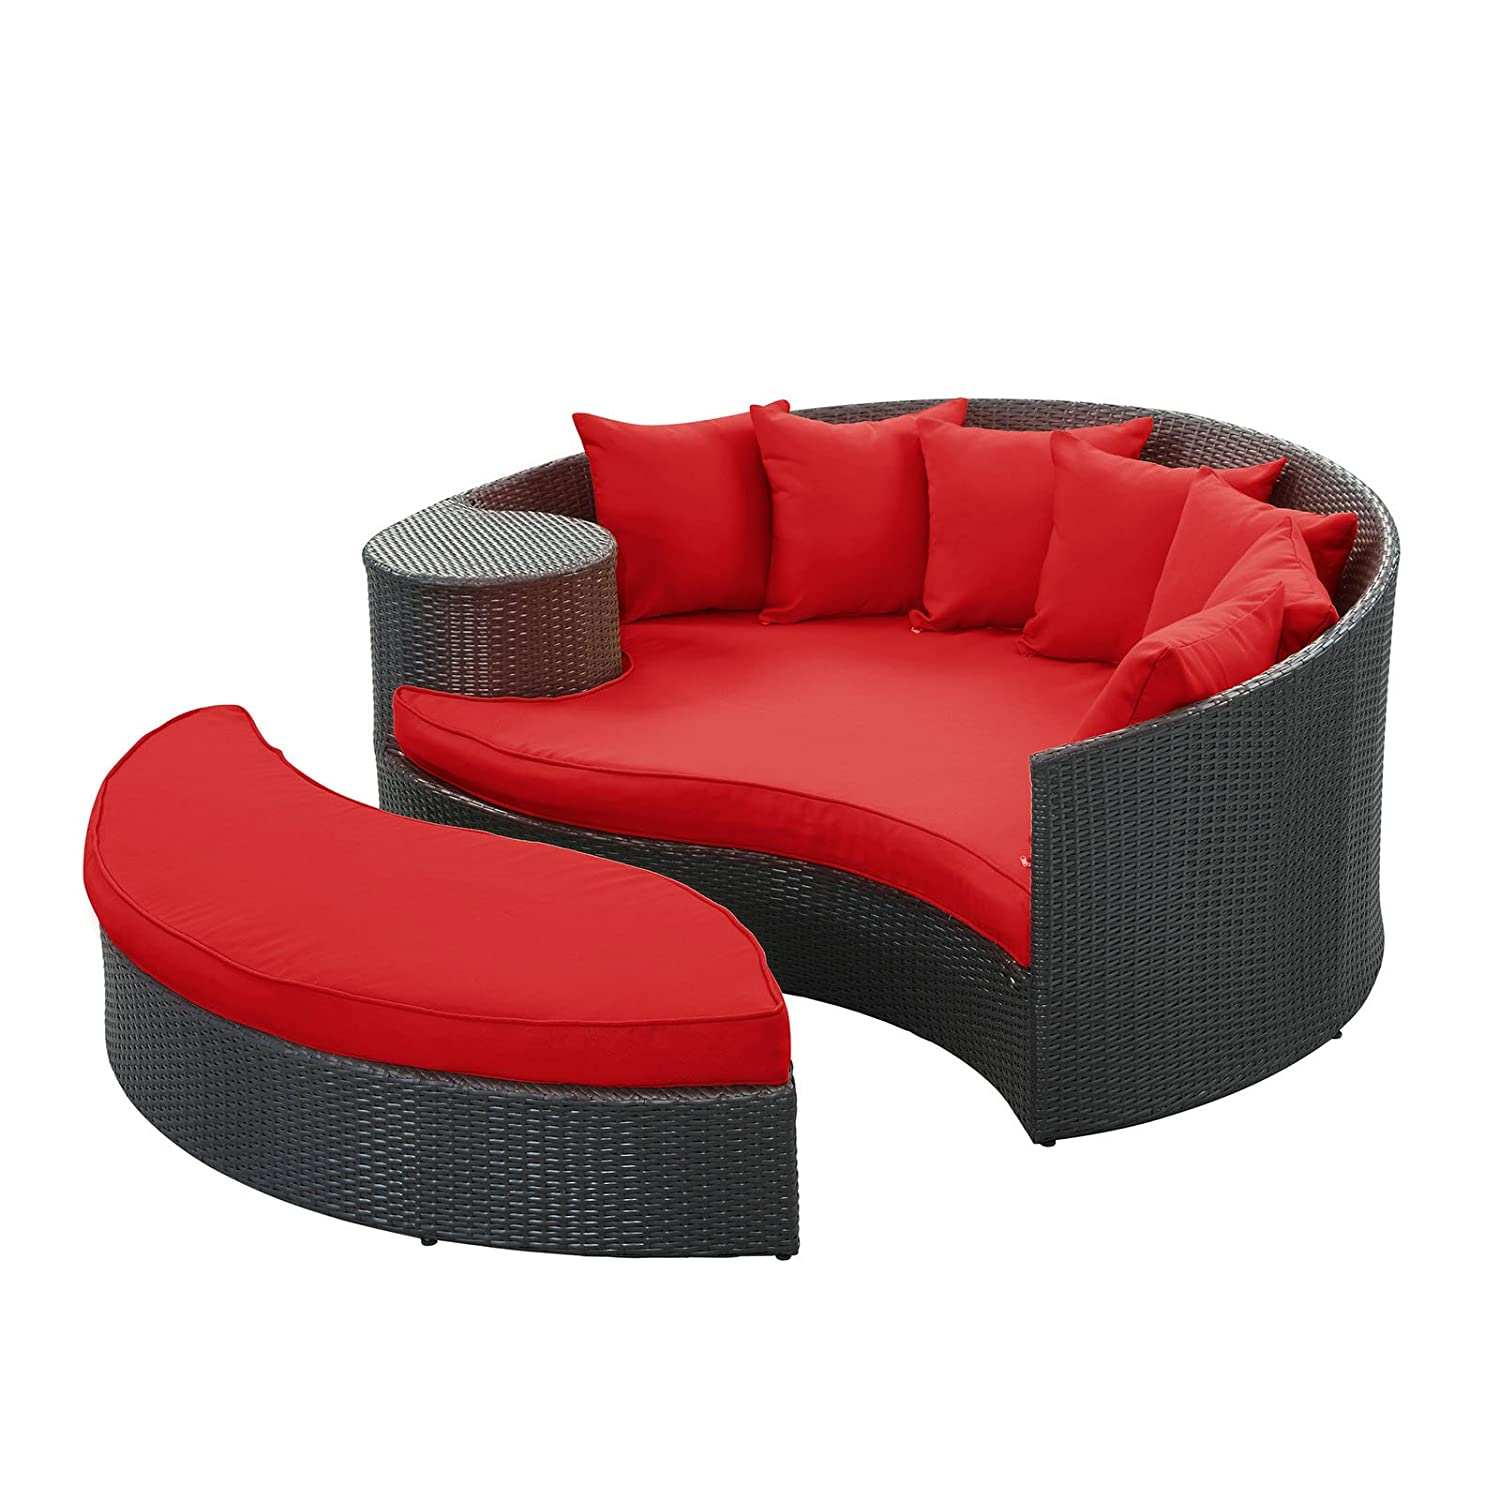 Red cushions beautiful patio sofa furniture round daybed for Round patio couch